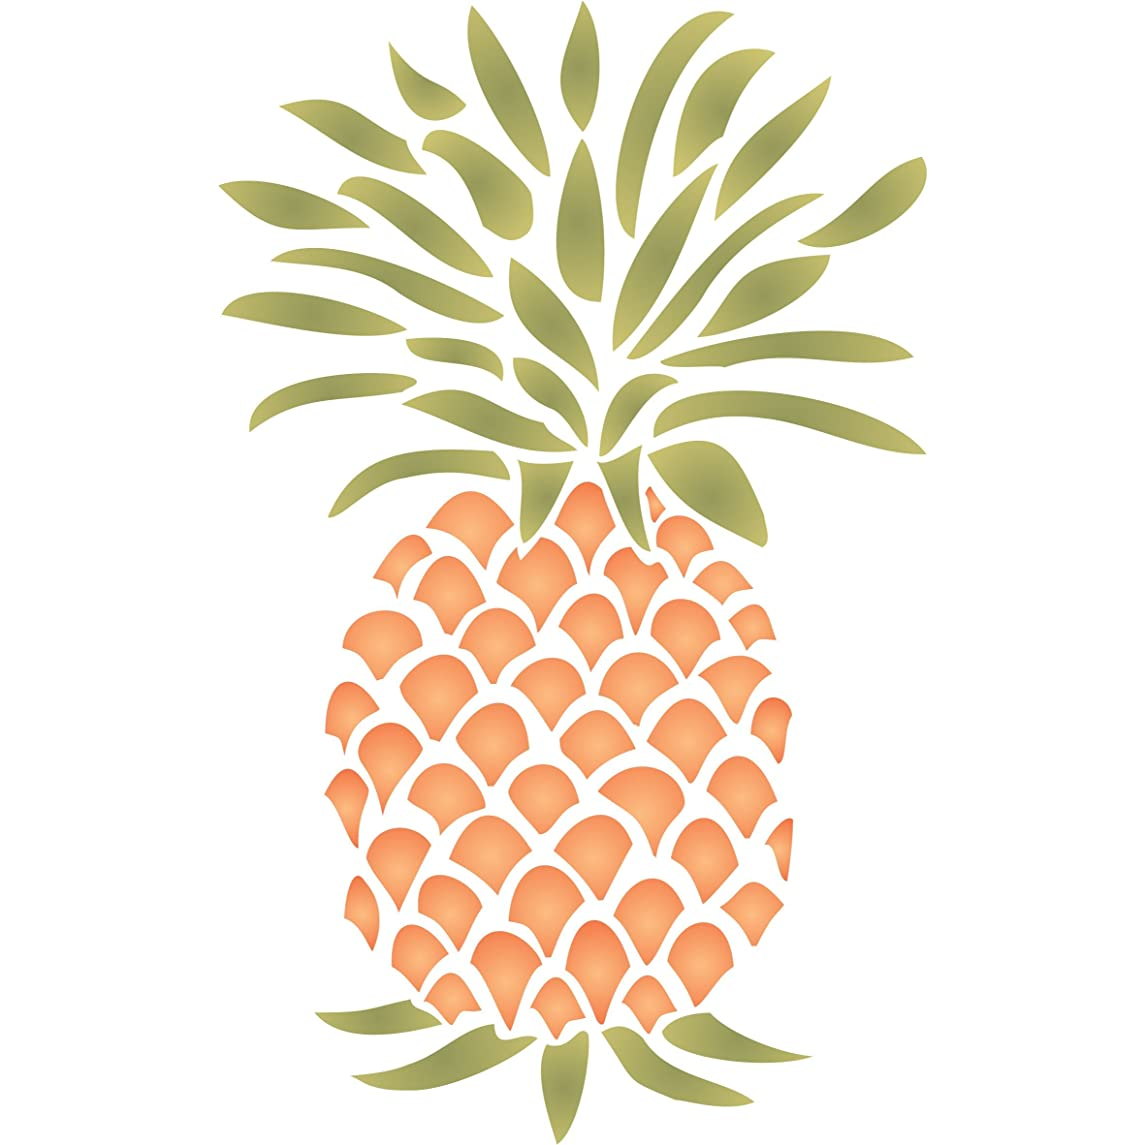 "Pineapple Stencil - (size 6.5""w x 10.5""h) Reusable Wall Stencils for Painting - Best Quality Fruit Kitchen Stencil Ideas - Use on Walls, Floors, Fabrics, Glass, Wood and More…"